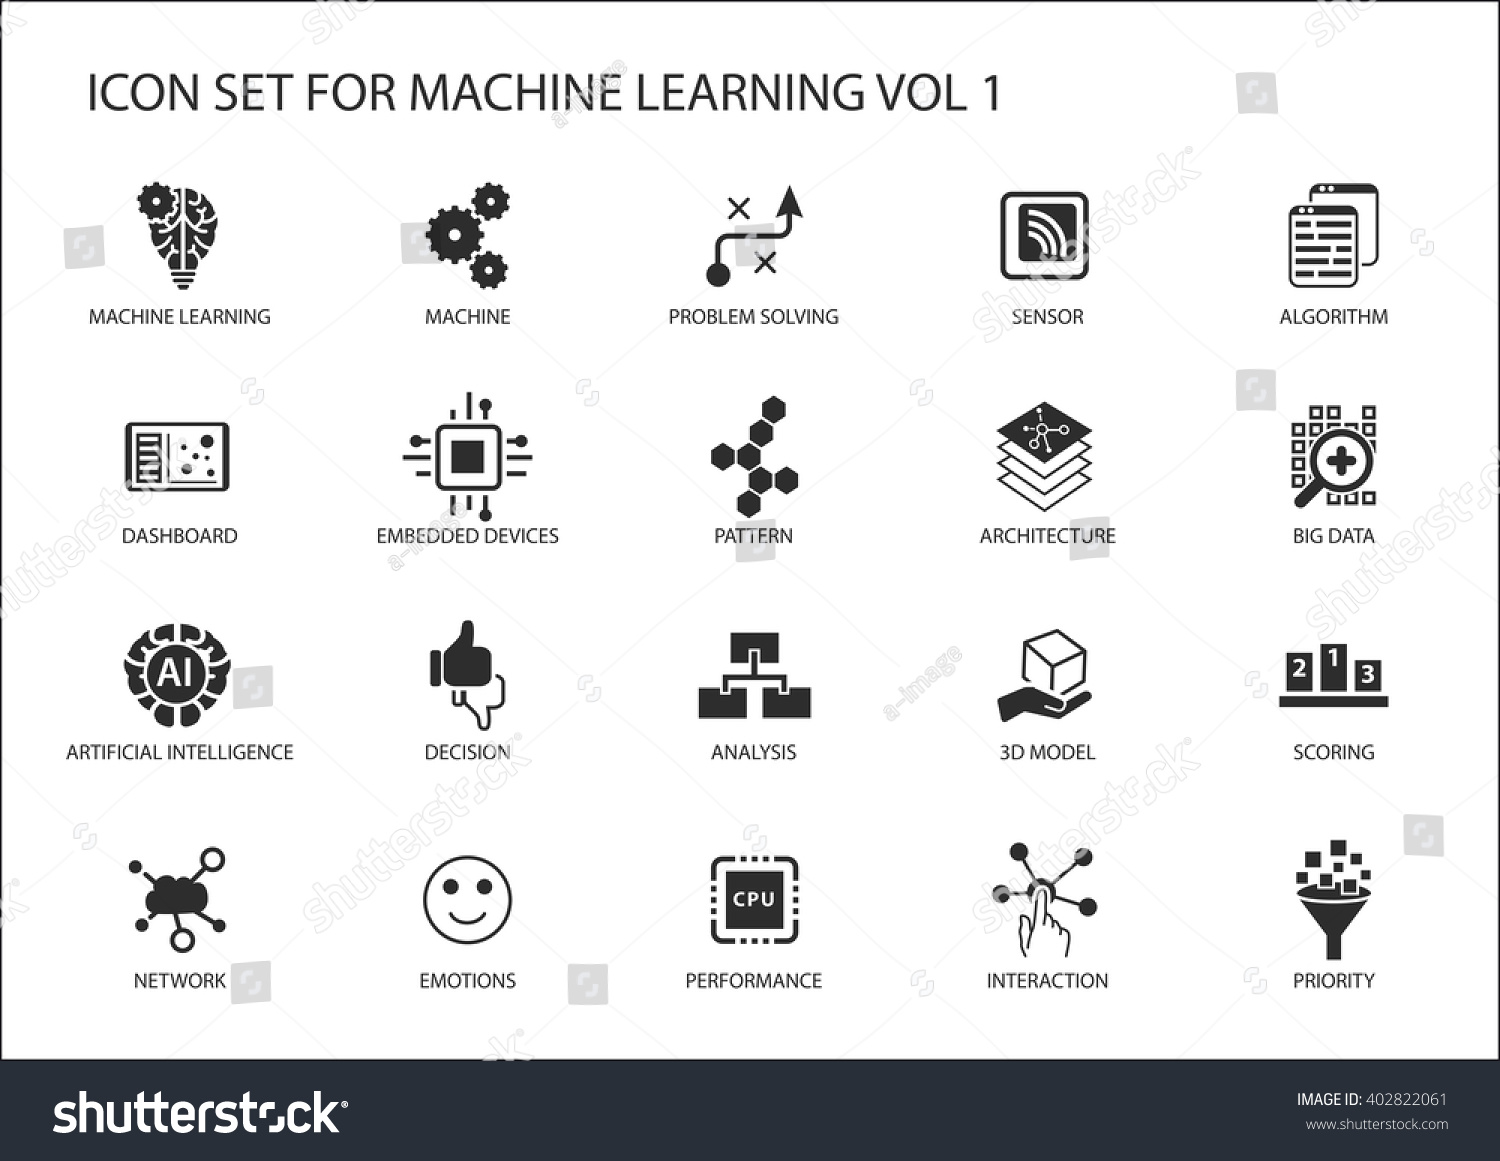 Network Analyzer Symbol : Smart machine learning vector icon set stock